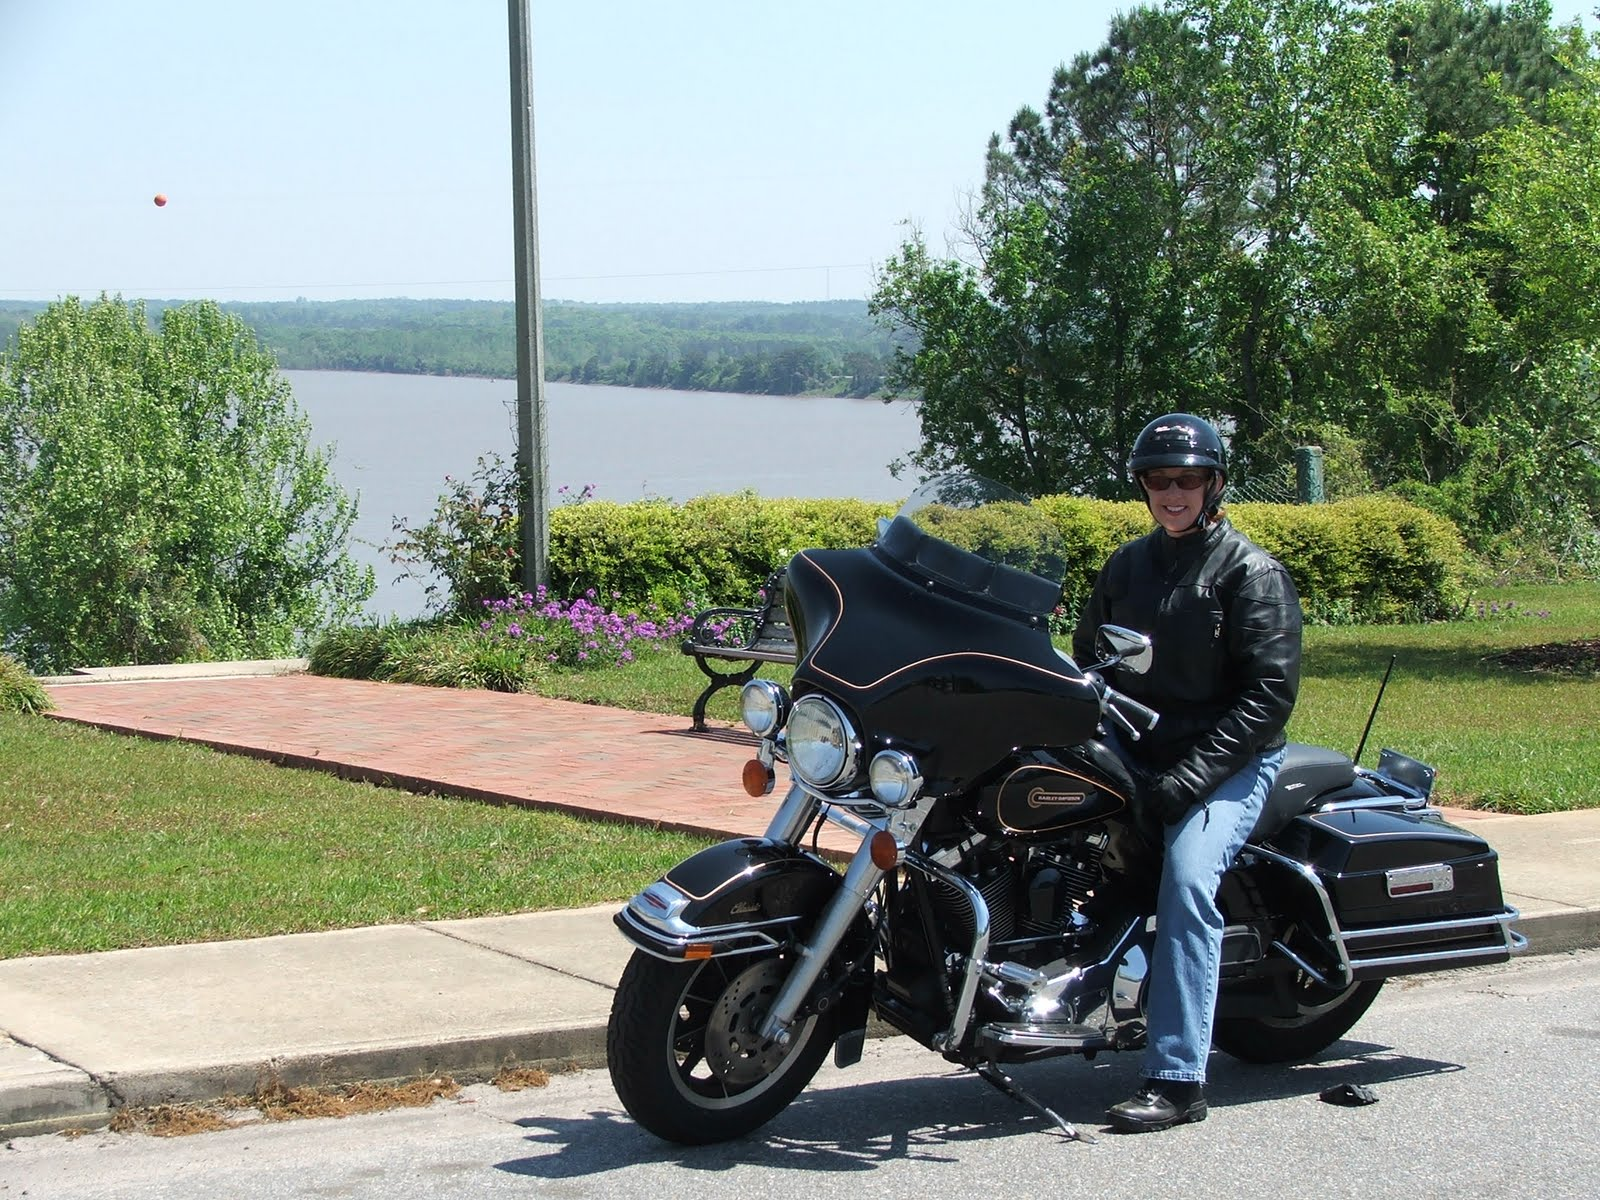 Southern Comfort Remembering Your First Continued For The 2015 Harley Davidson Tour Pack By Simply Removing Horizontal Chrome Saddle Bag Guards And Exchanging Big Pillow Seat With A Sport